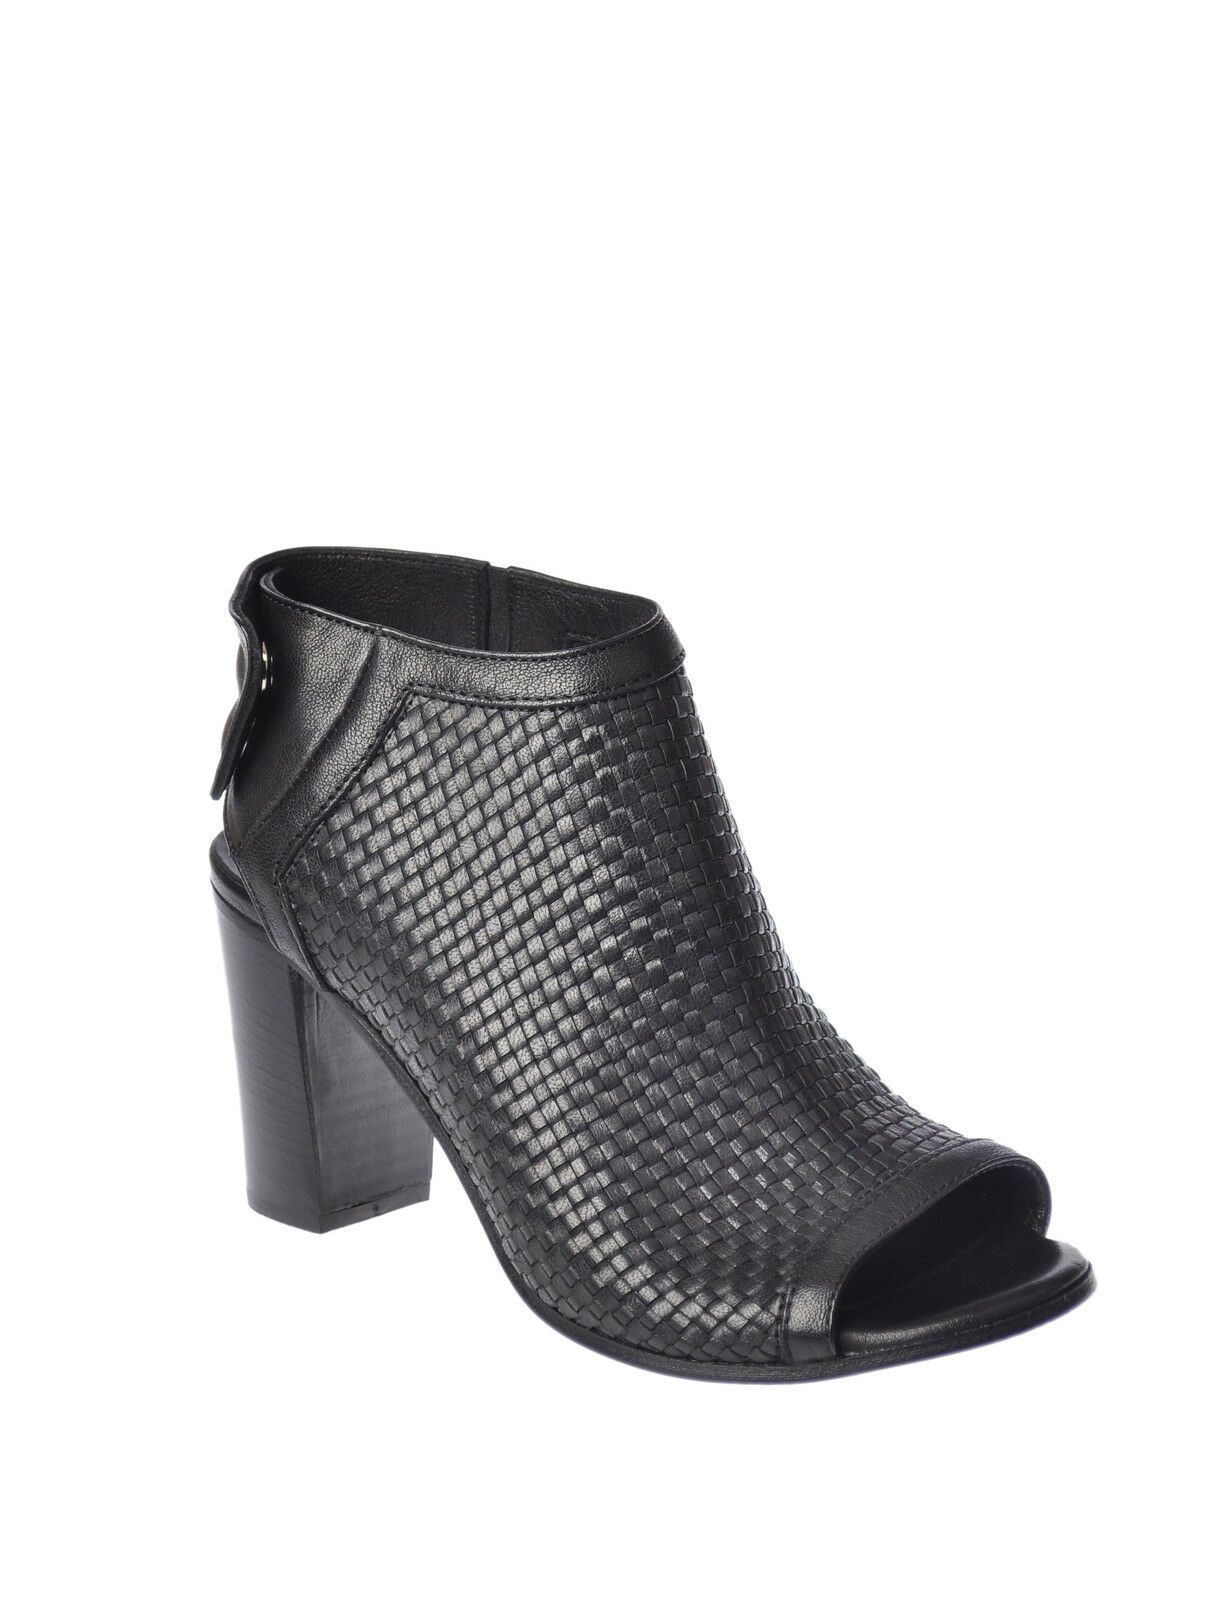 Lemarè  -  Ankle boots - Female - 38 - Black - 1772221C163132